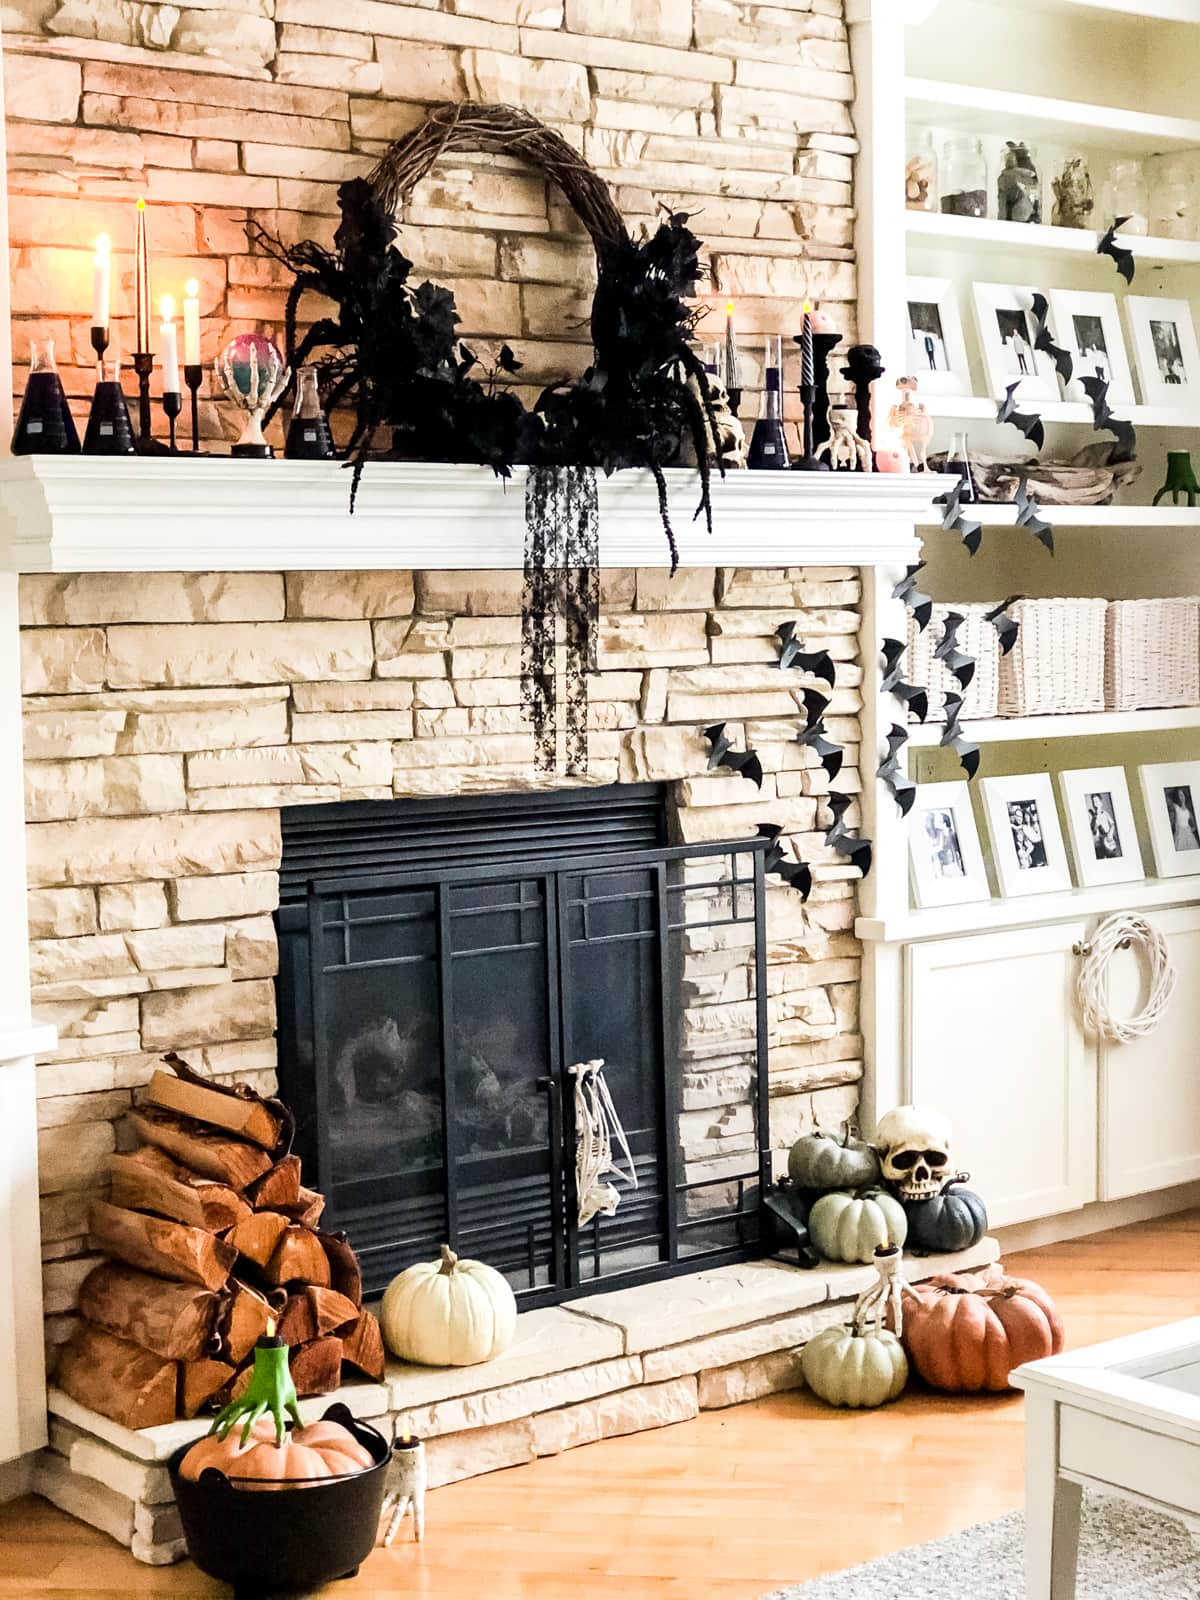 Fireplace mantel decorated for Halloween with a wreath and bats